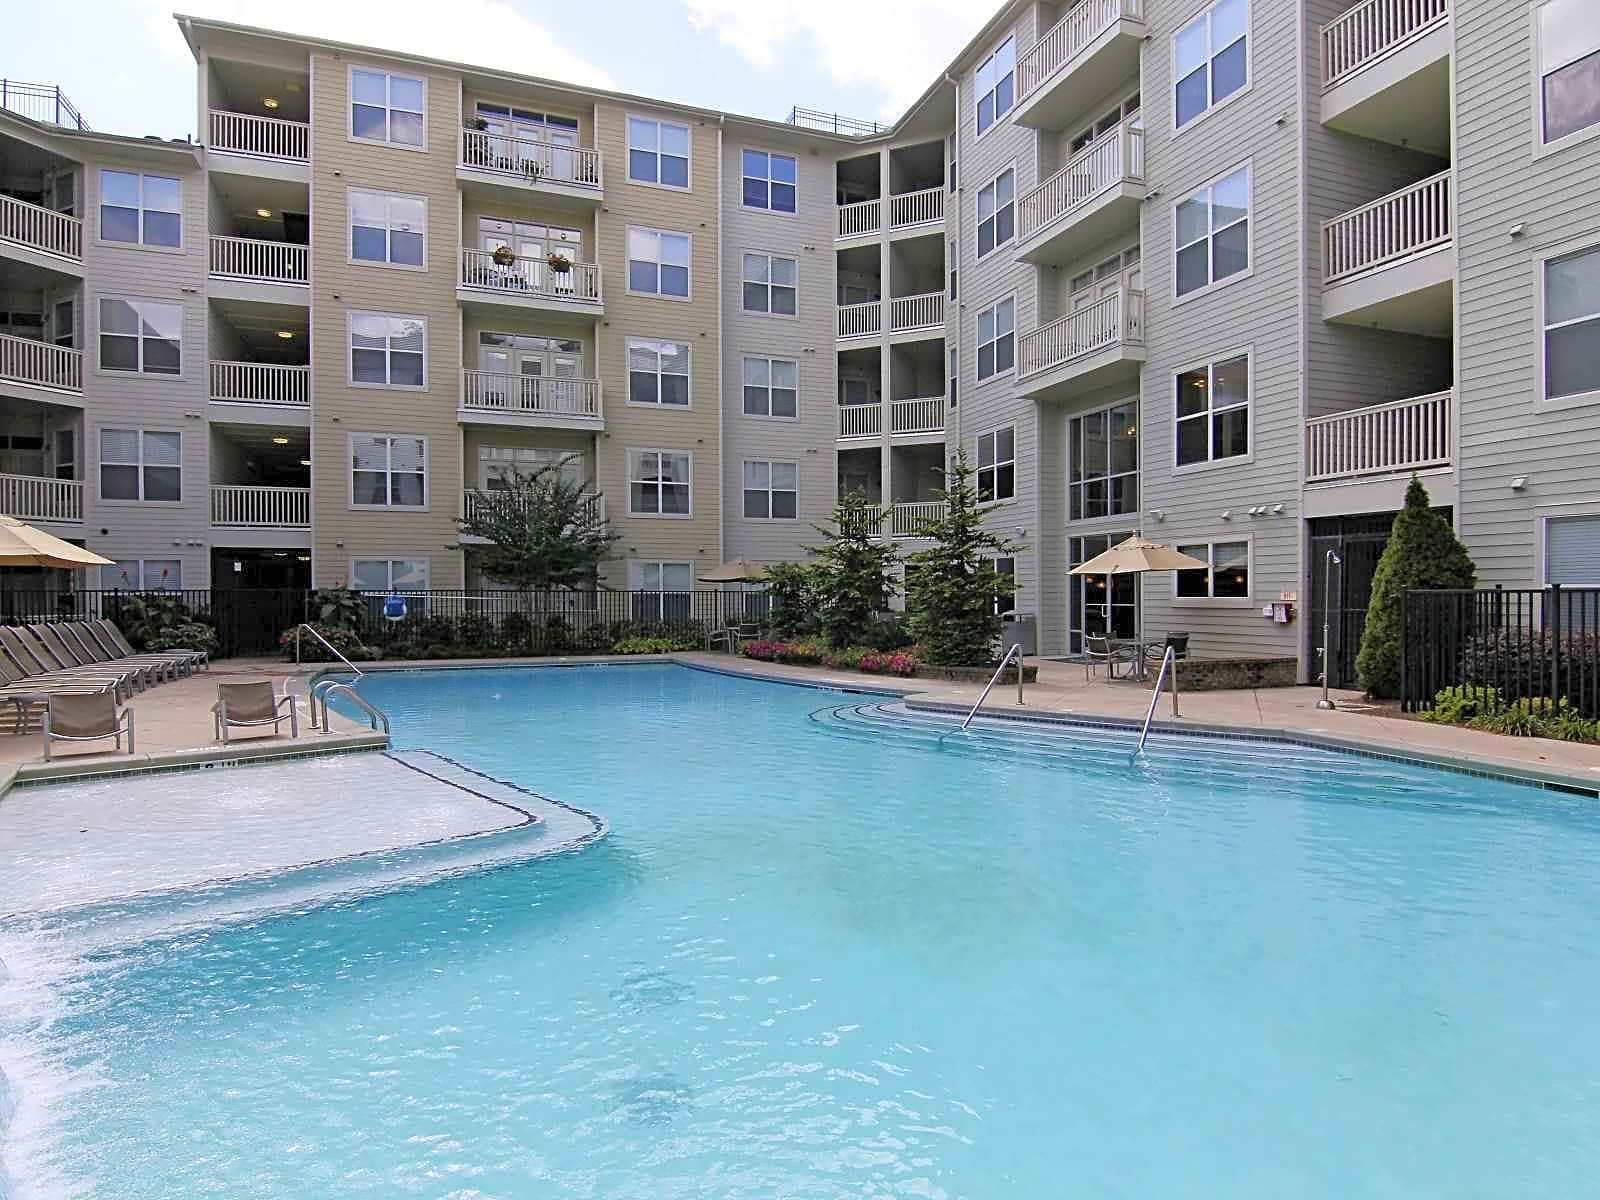 Photo: Dunwoody Apartment for Rent - $980.00 / month; 1 Bd & 1 Ba